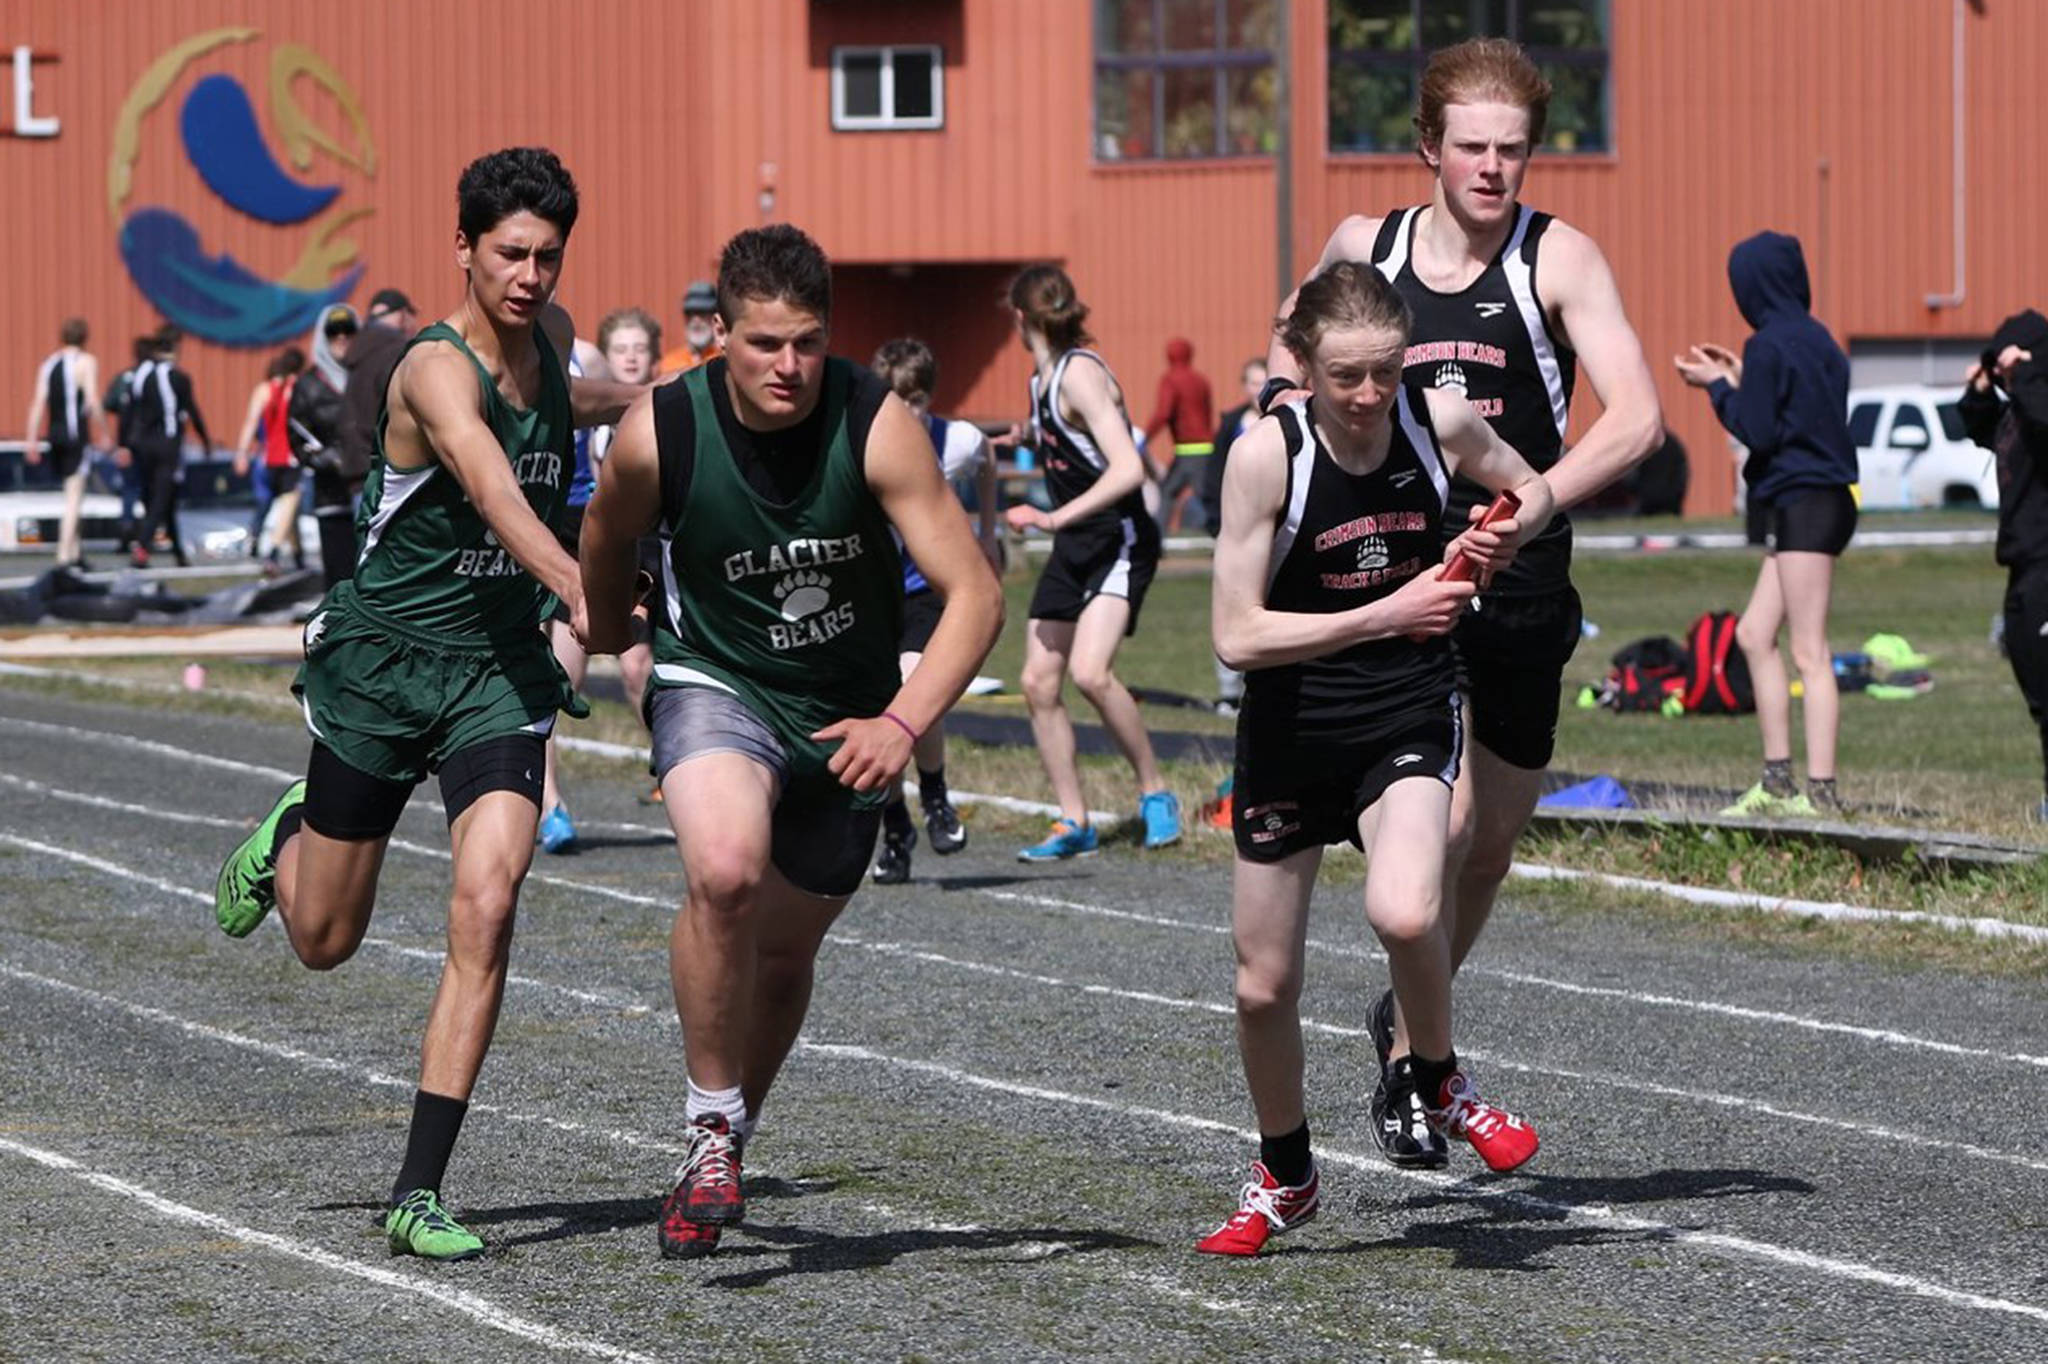 Juneau-Douglas High School's Aaron Blust, right, accepts the baton from Owen Squires during a relay race at the Haines Invitational in Haines last weekend. (Courtesy Photo | Lori Giddings)